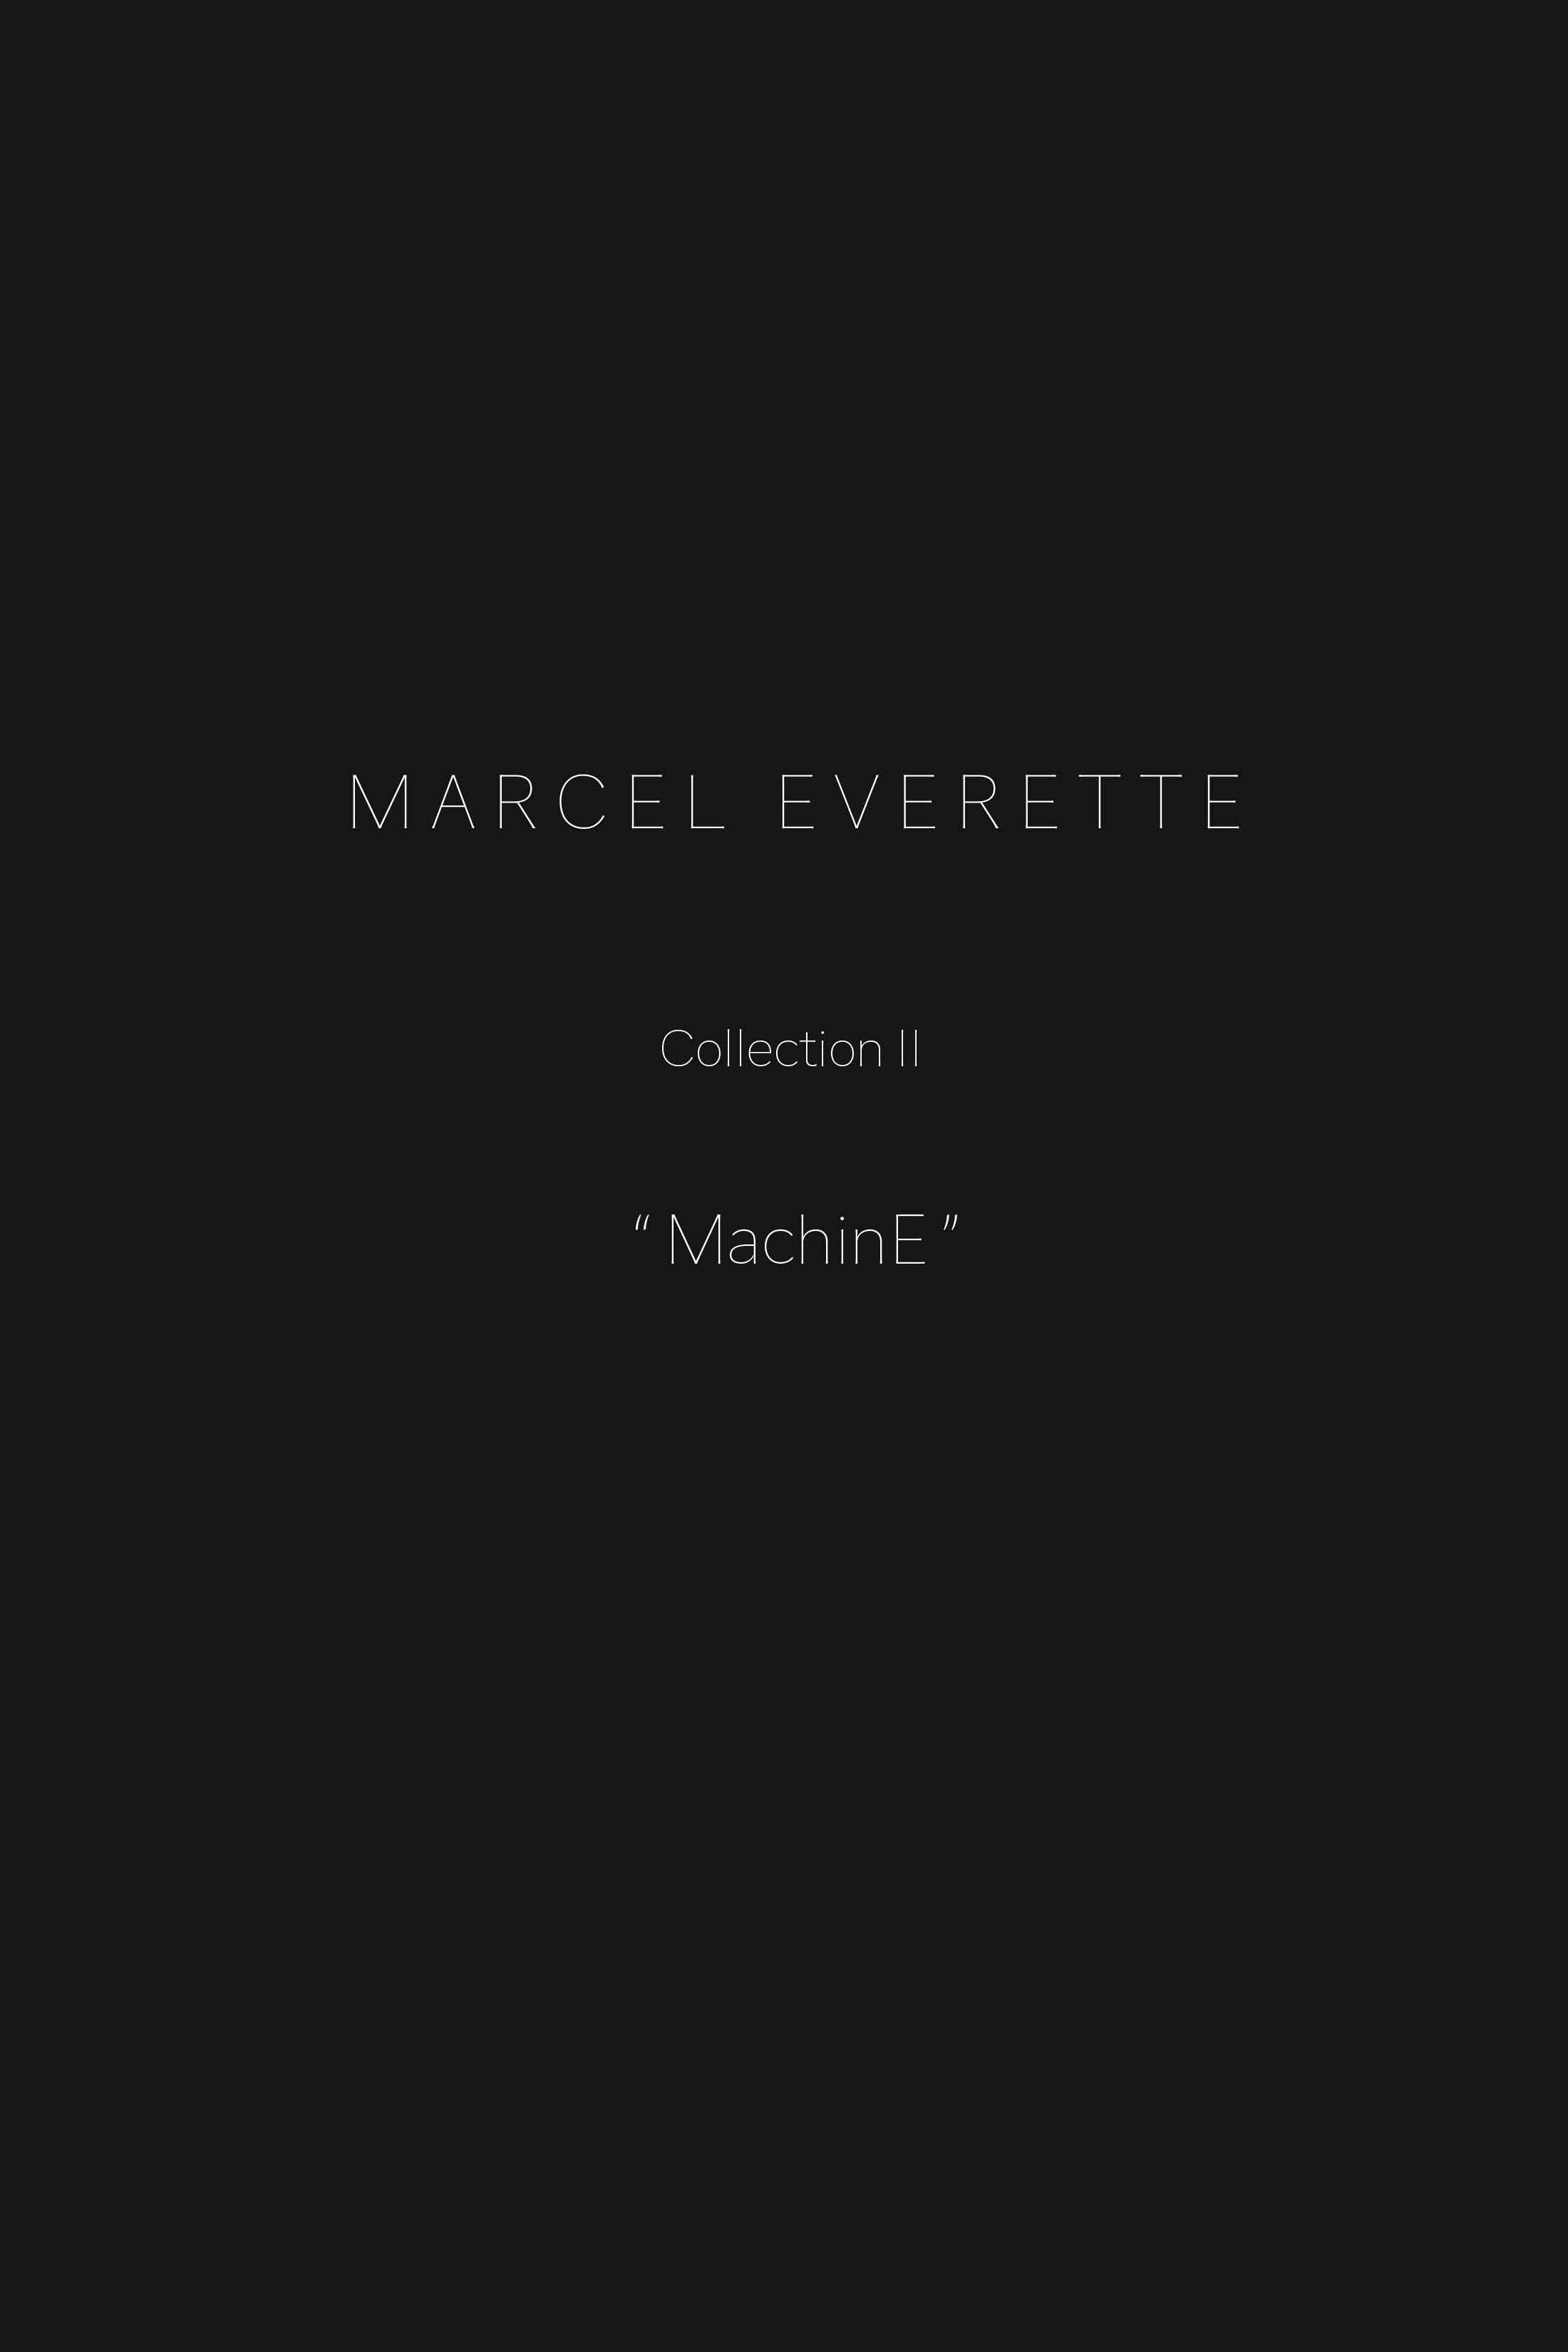 Marcel Everette's Latest Collection